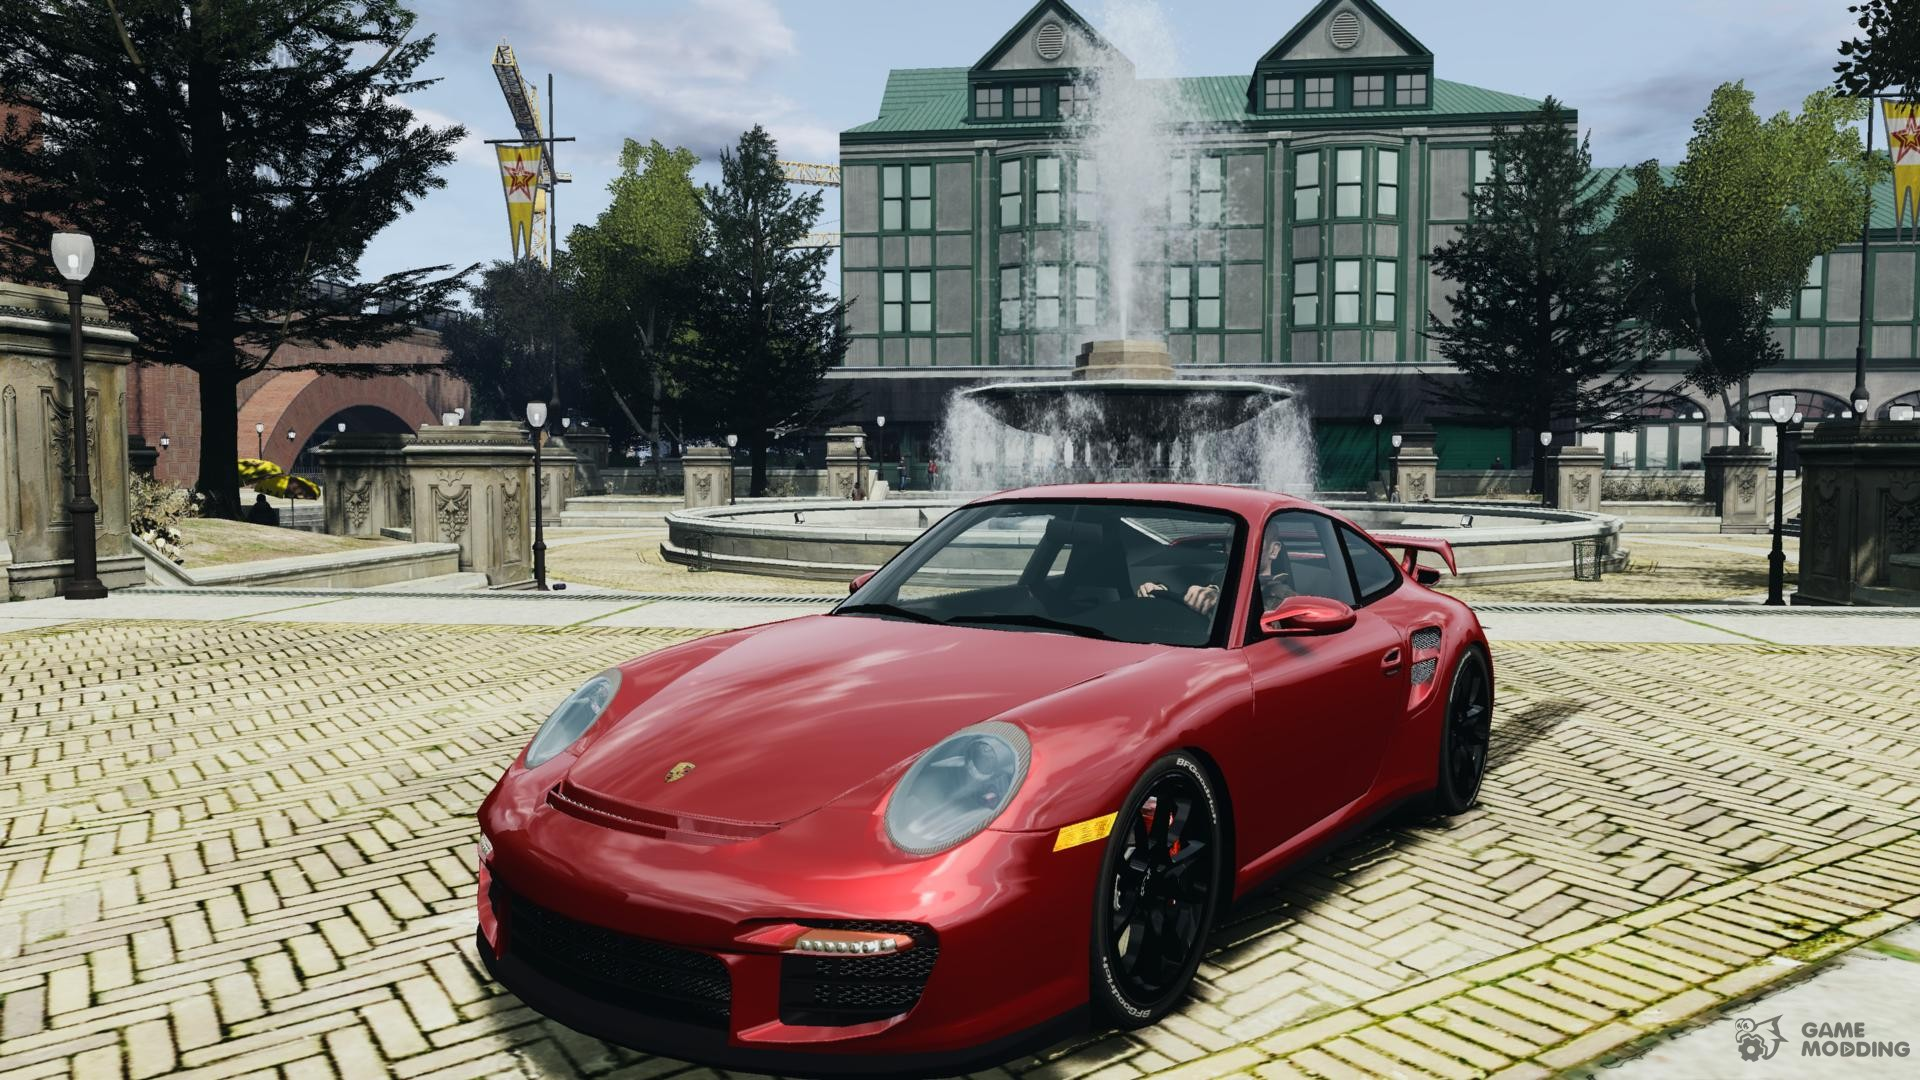 dae54f02f74806a8f6dfa6798a0295dce8ff927891cb934a9239774aa71302f5 Remarkable Porsche 911 Gt2 Xbox 360 Cars Trend